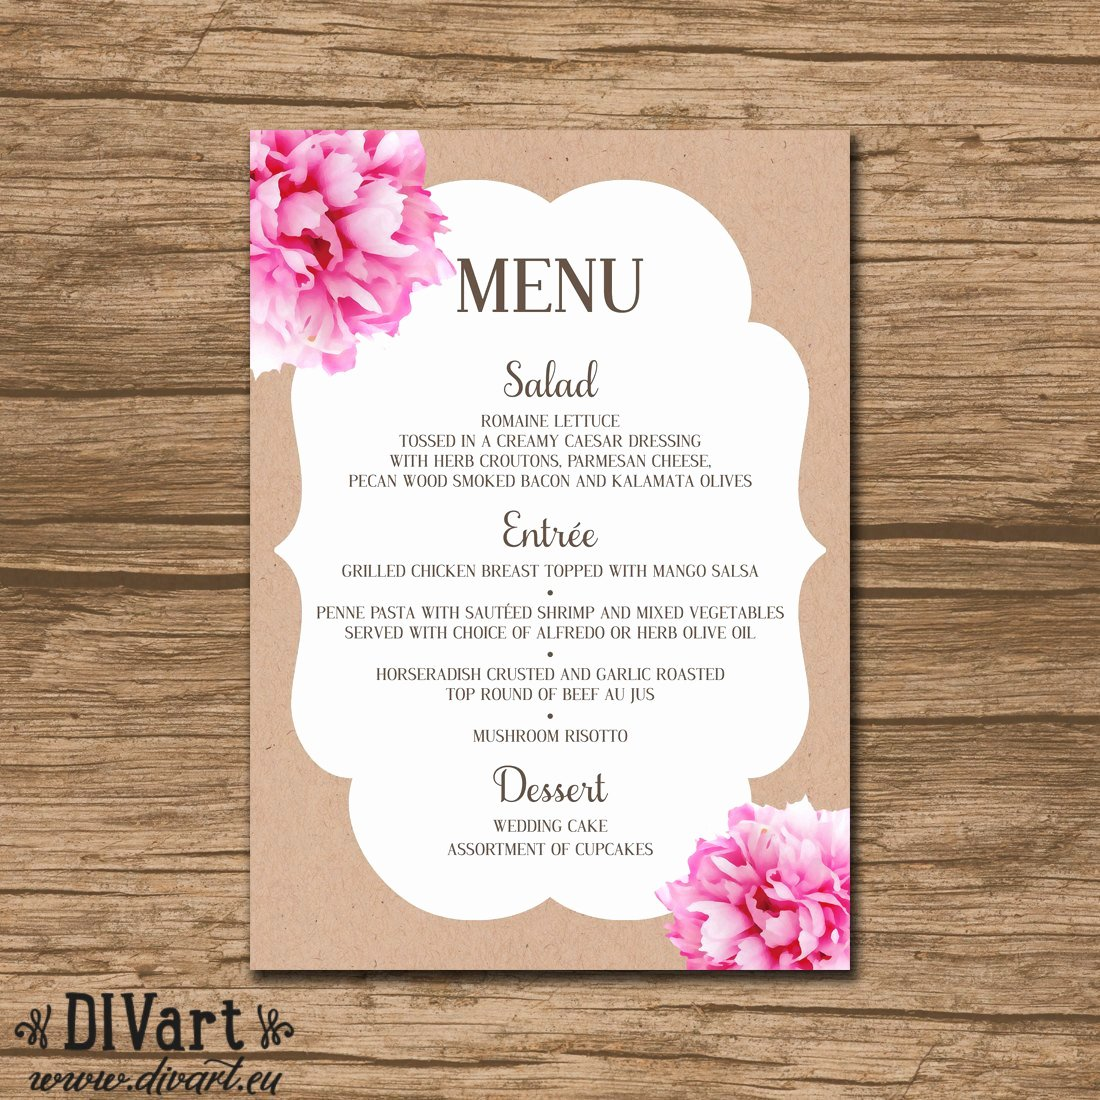 Baby Shower Menu Template Best Of Floral Bridal Shower Menu Baby Shower Menu Rehearsal by Divart